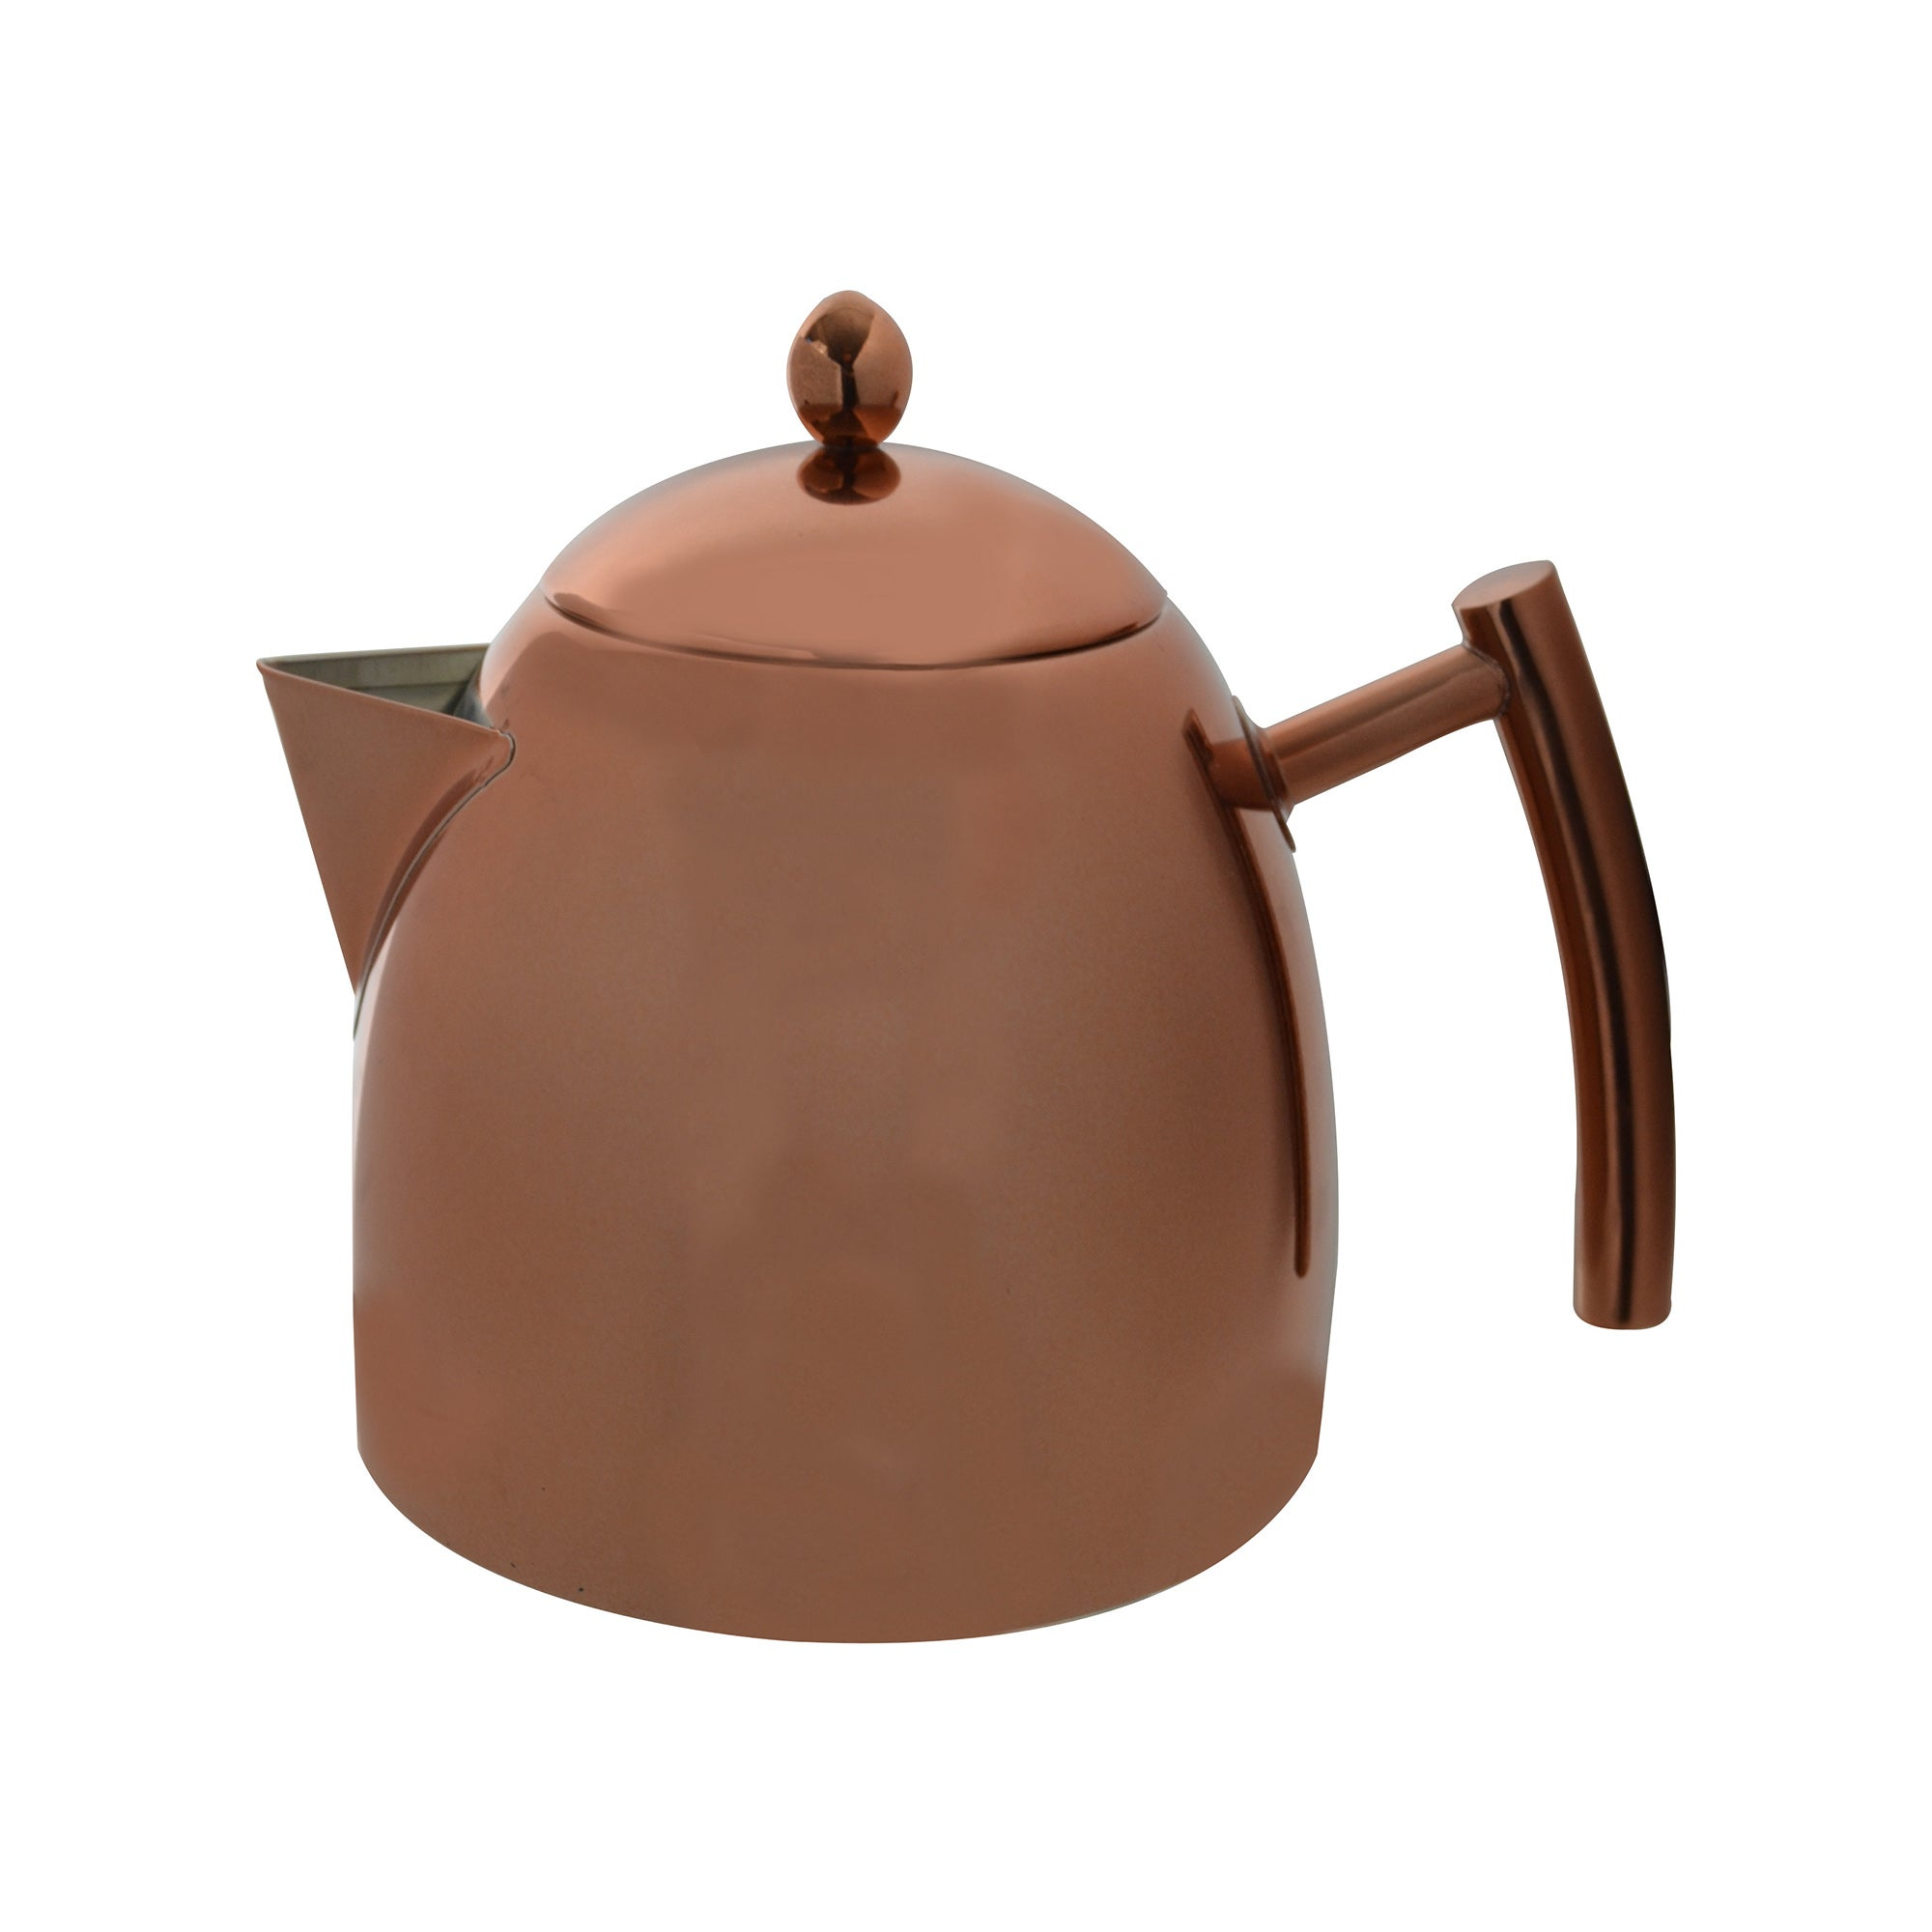 buy cheap stainless steel teapot compare products prices. Black Bedroom Furniture Sets. Home Design Ideas